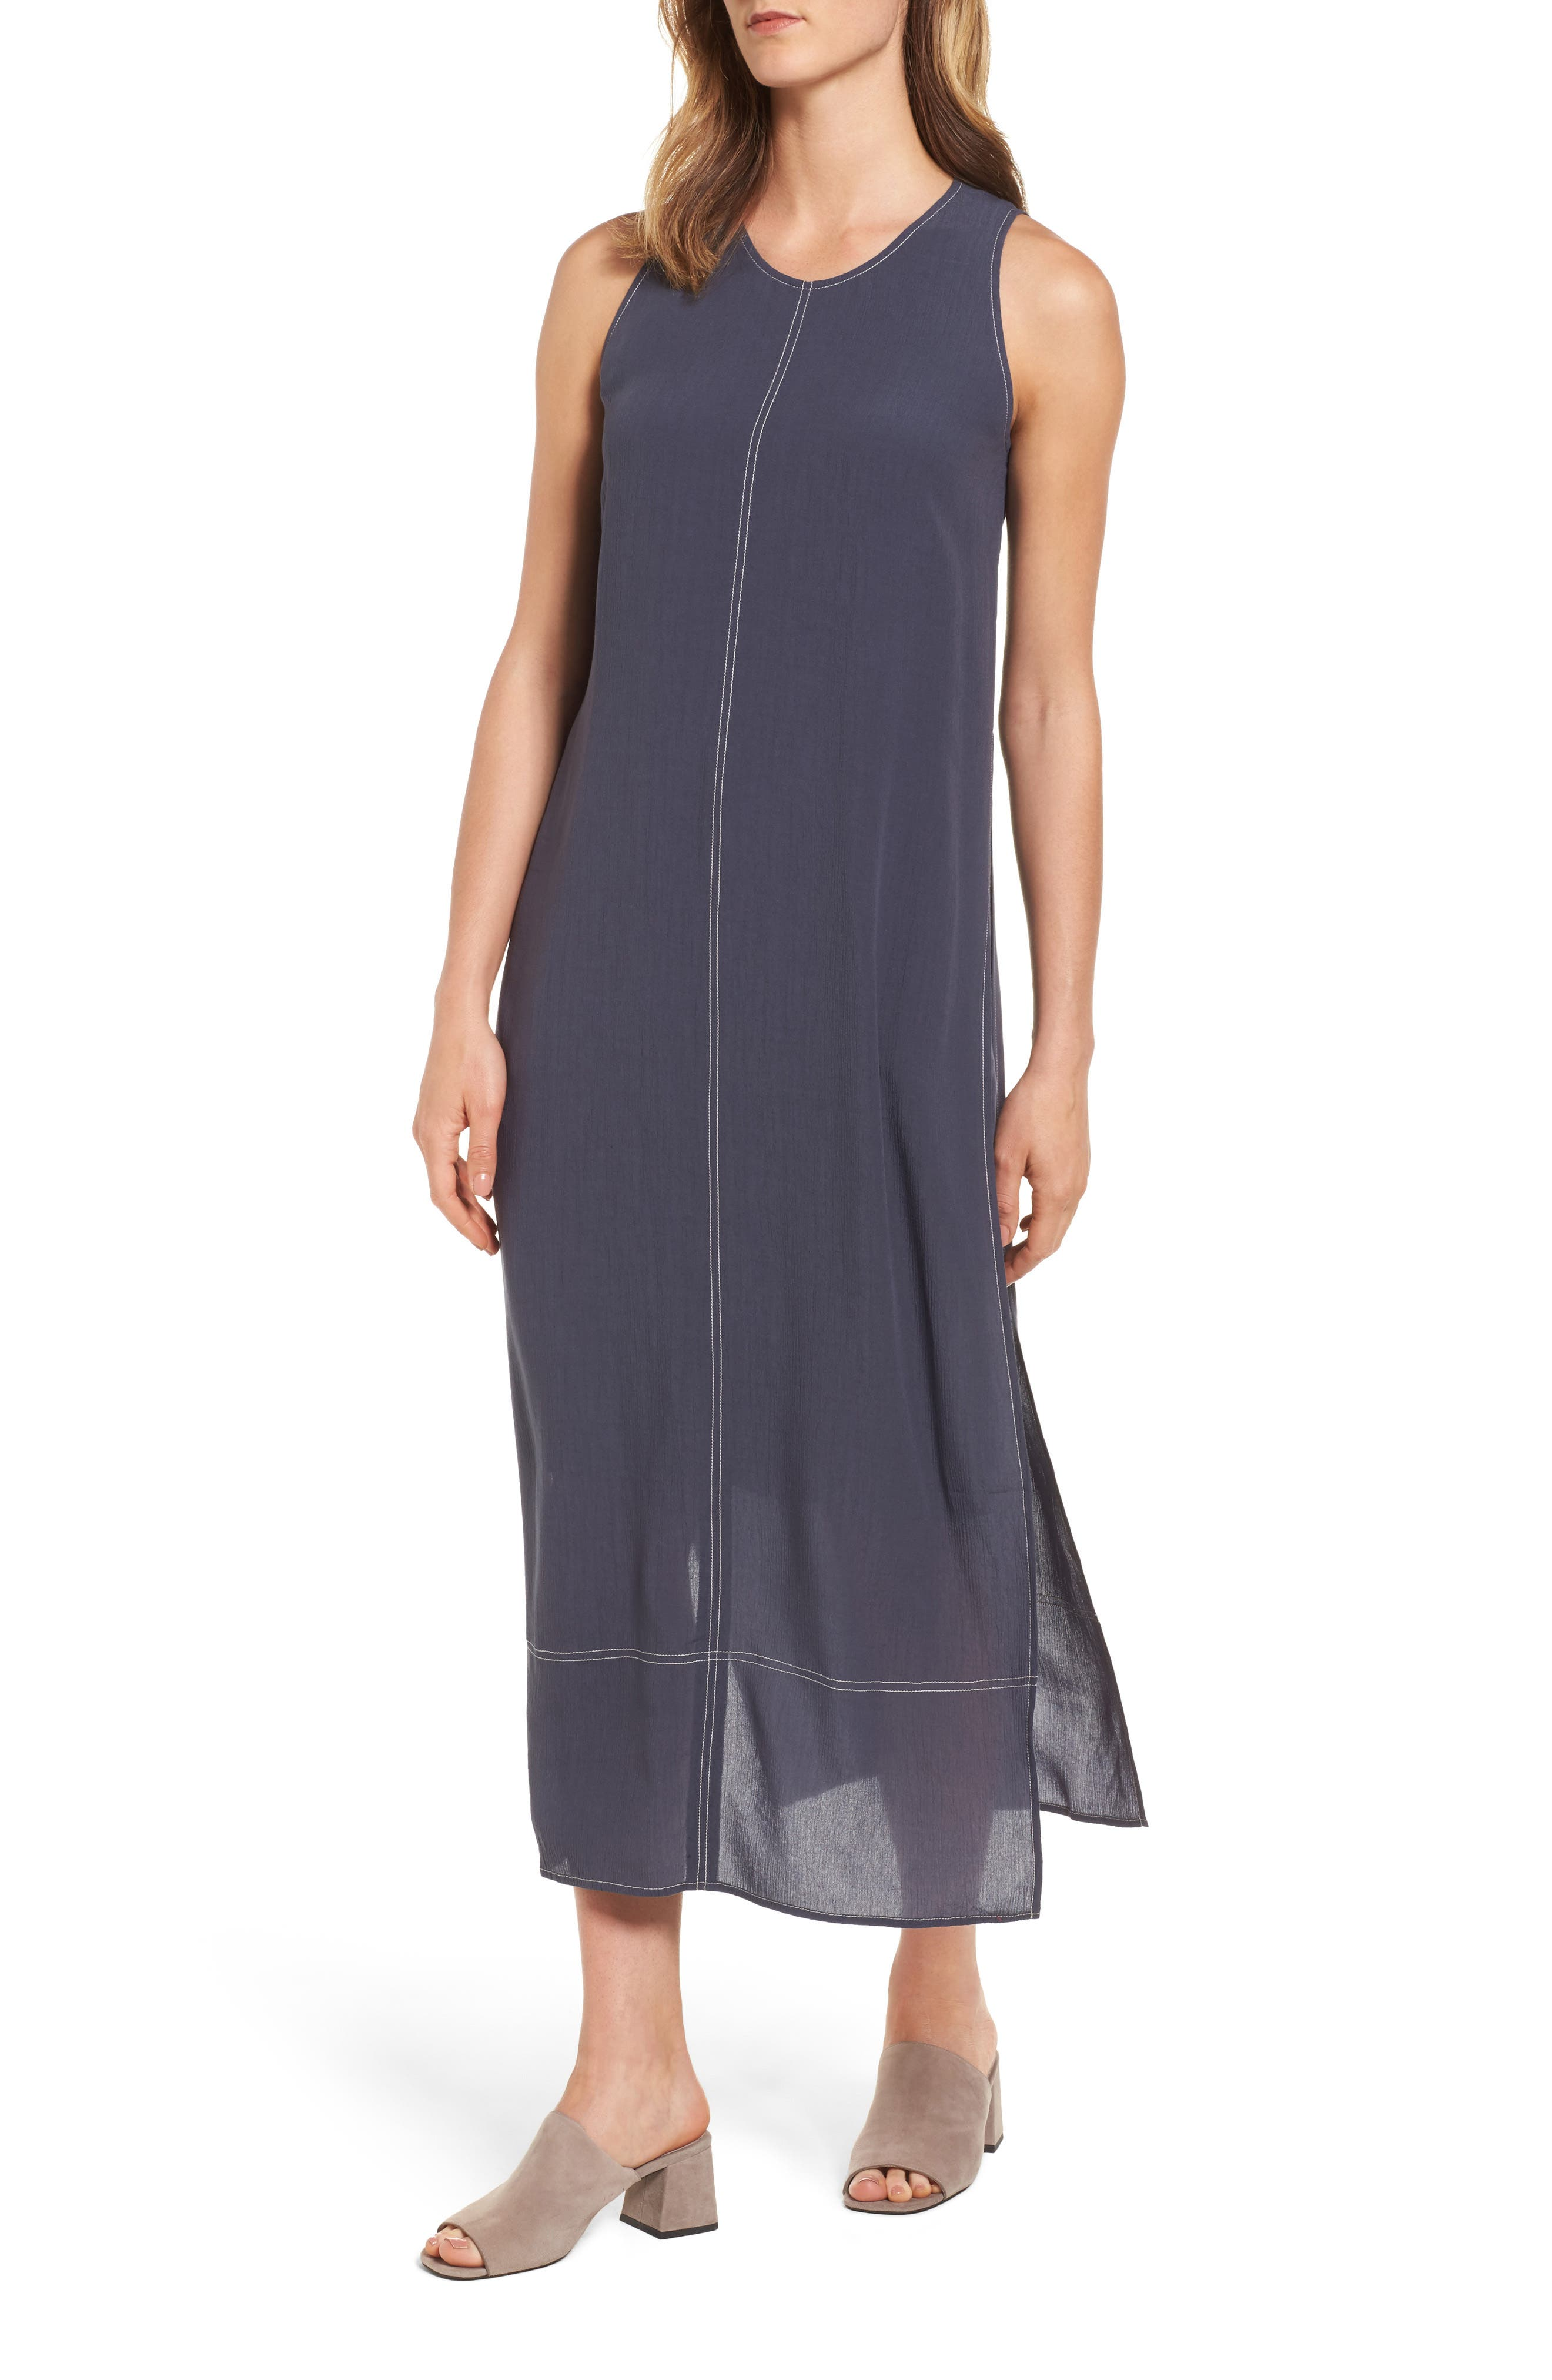 NIC+ZOE Stitched Up Midi Dress